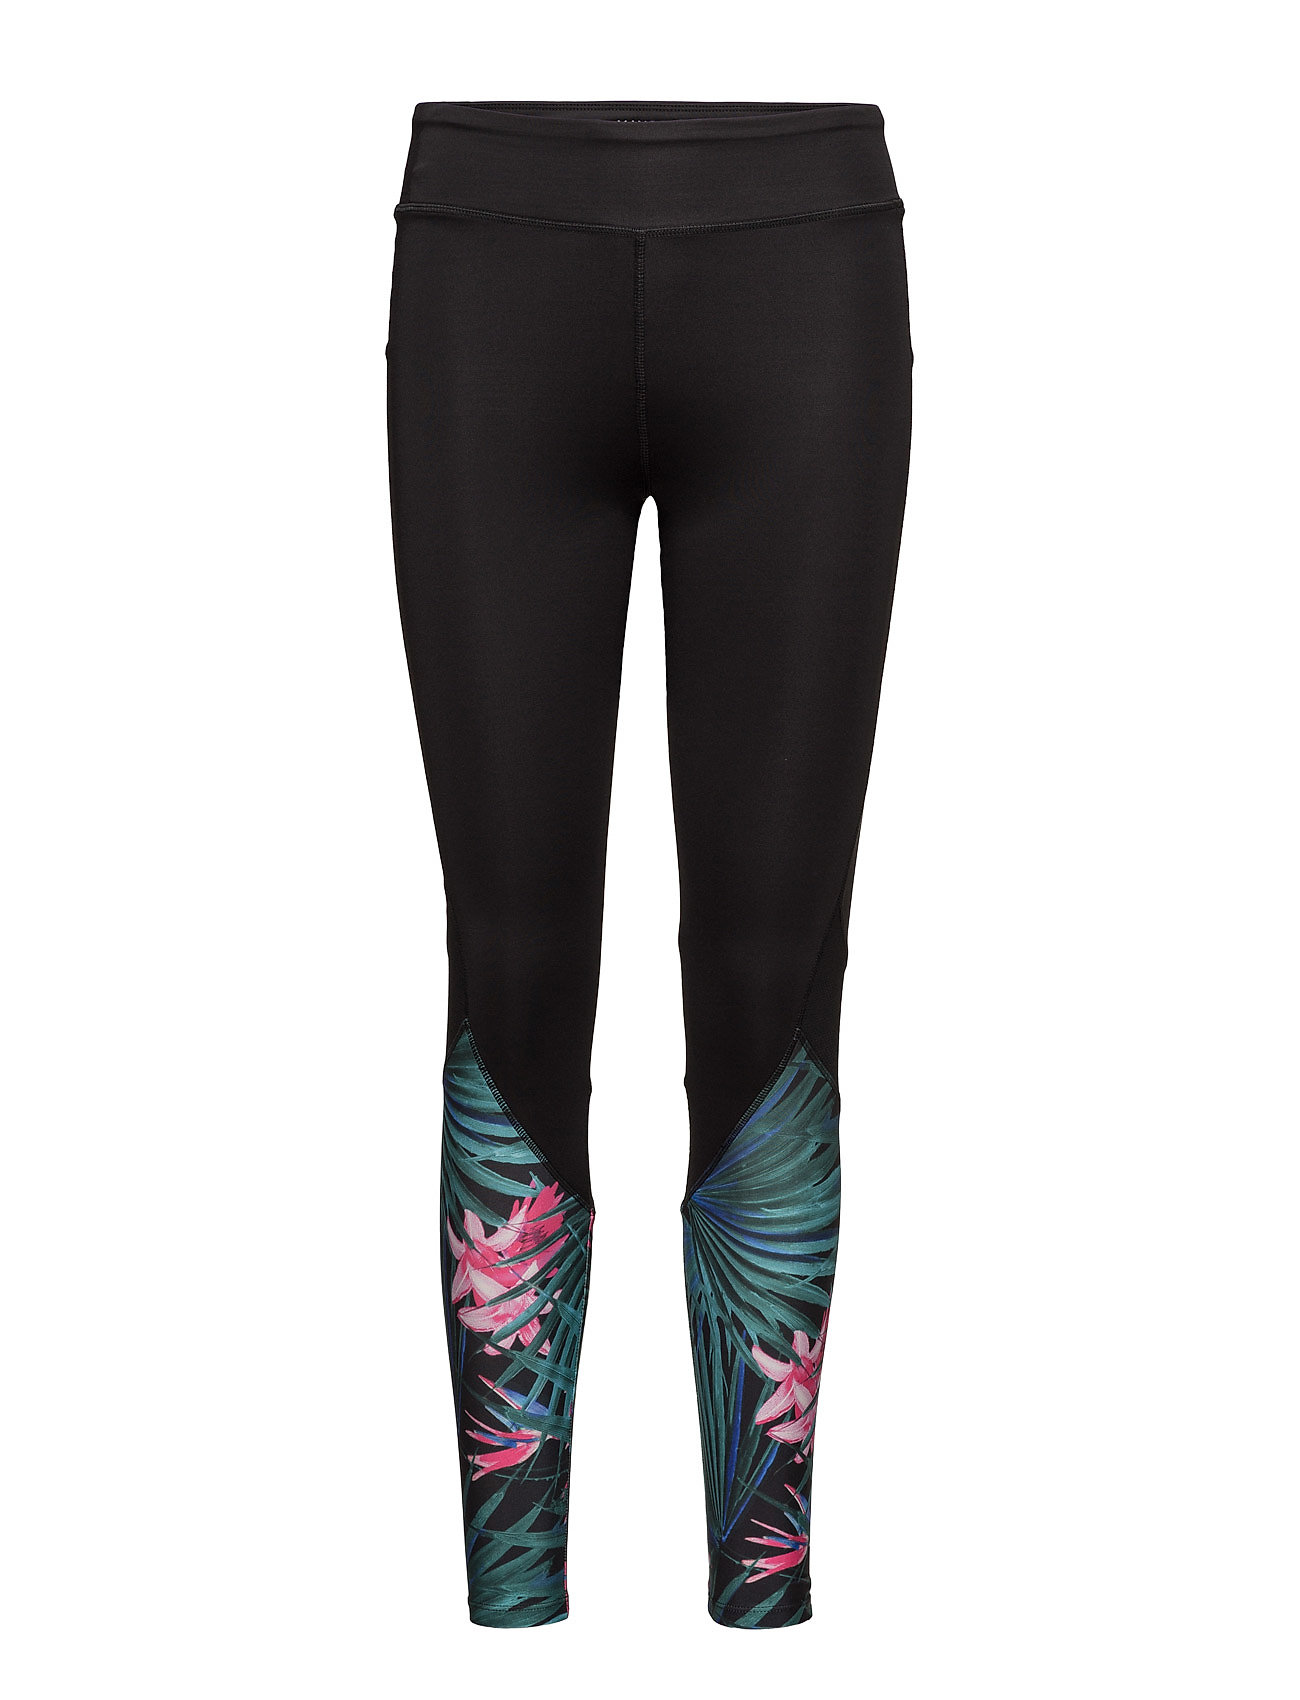 Slimming Effect Leggings Mango Sports Trænings leggings til Damer i